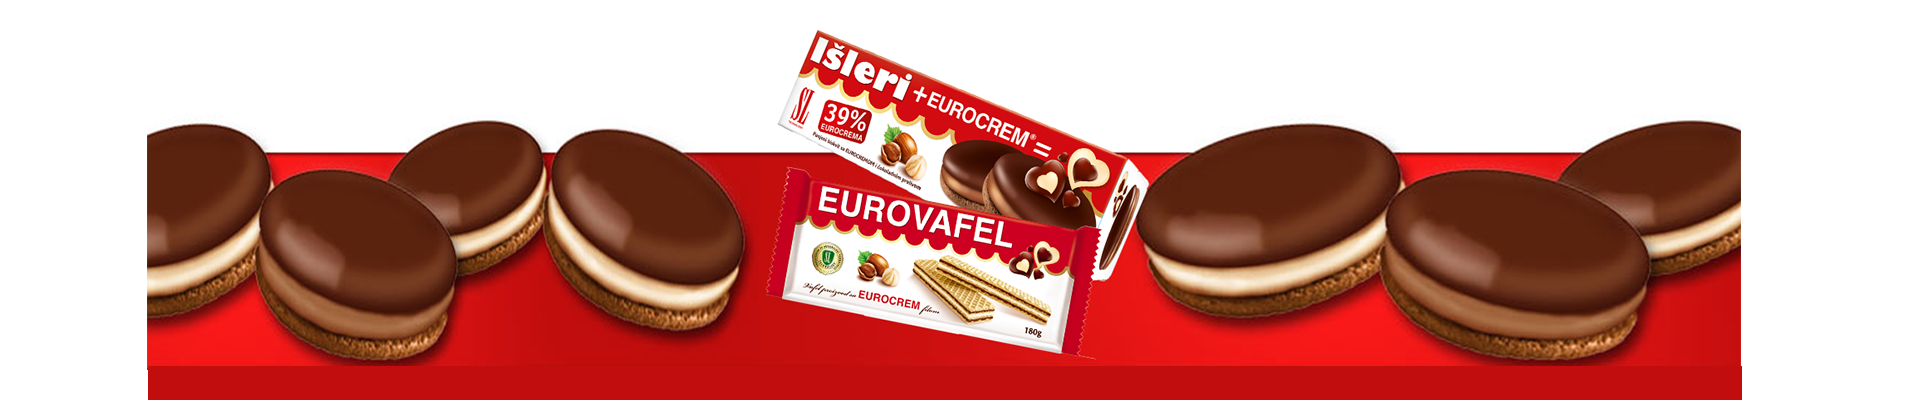 Your favorite Eurocrem biscuits!